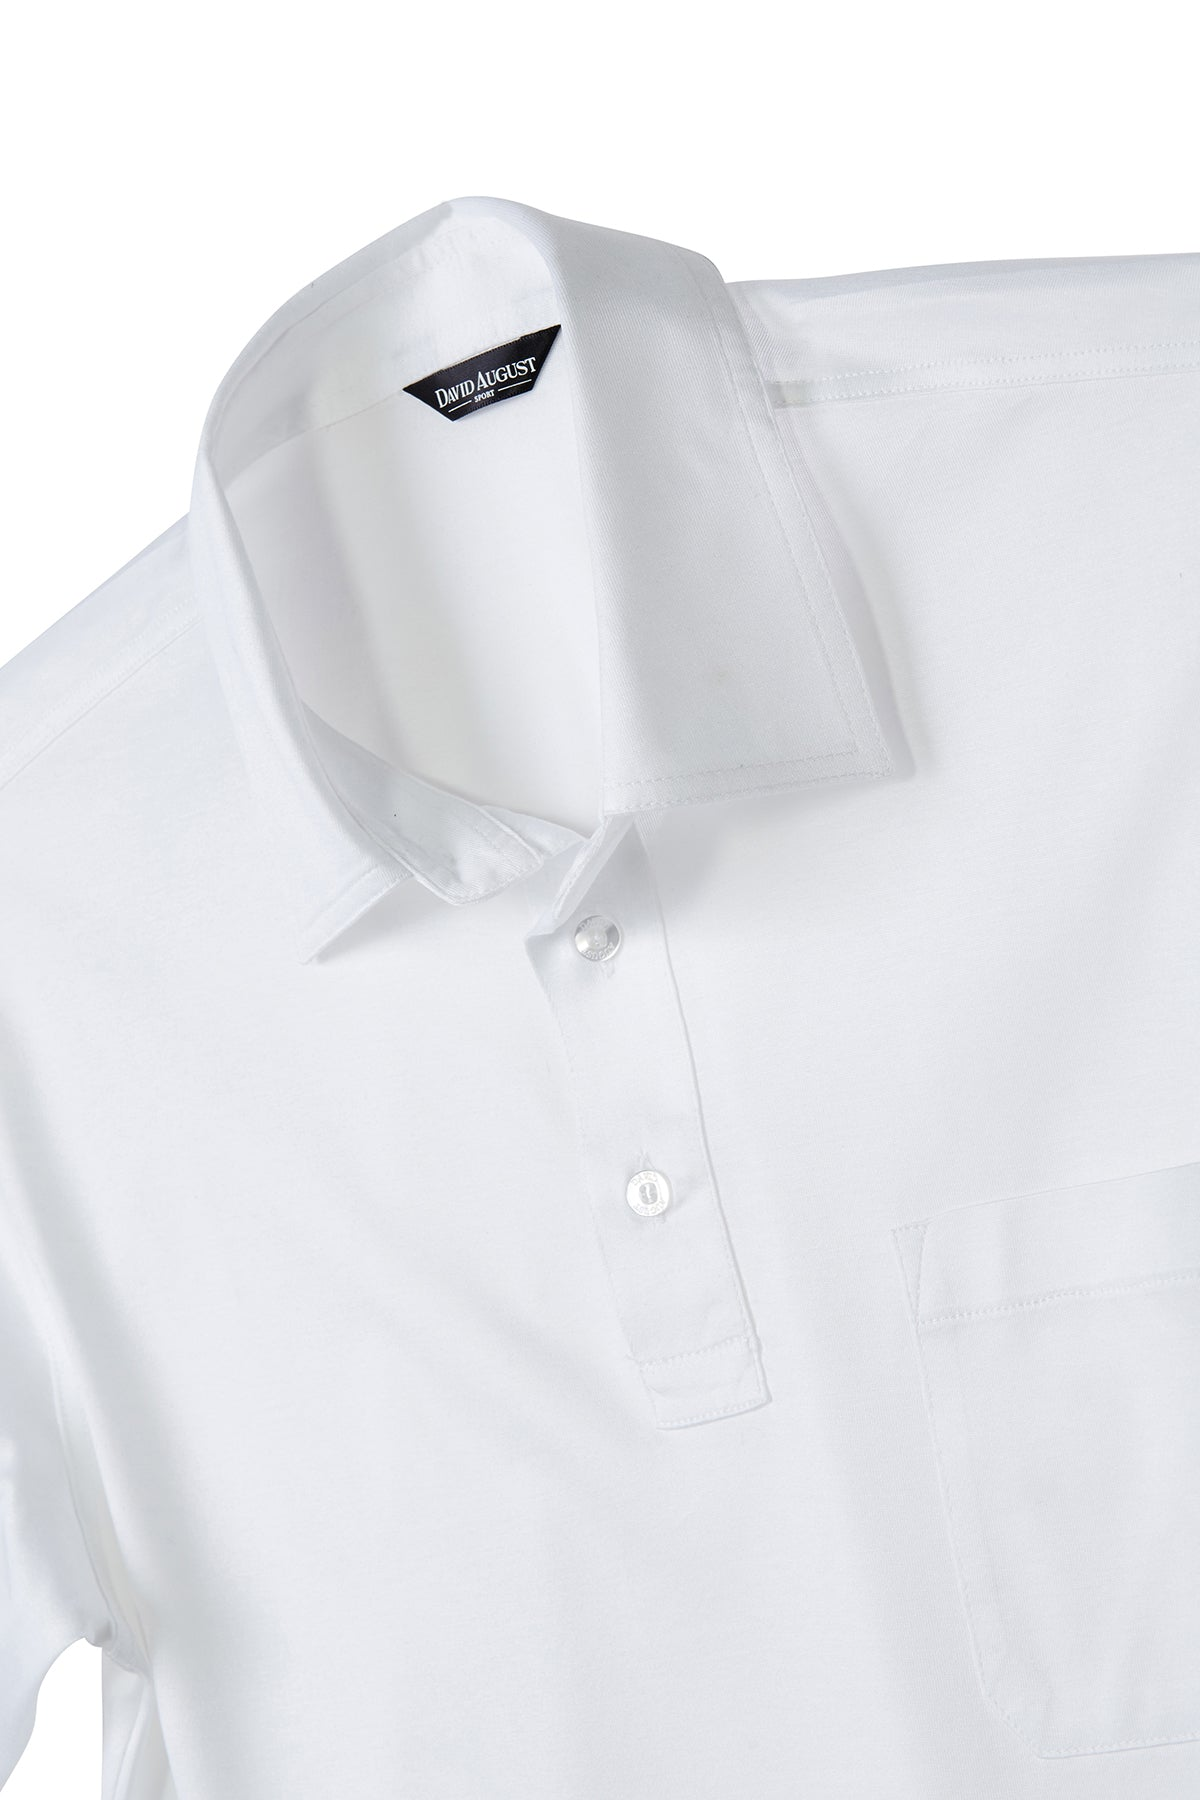 Mercerized Cotton White Polo